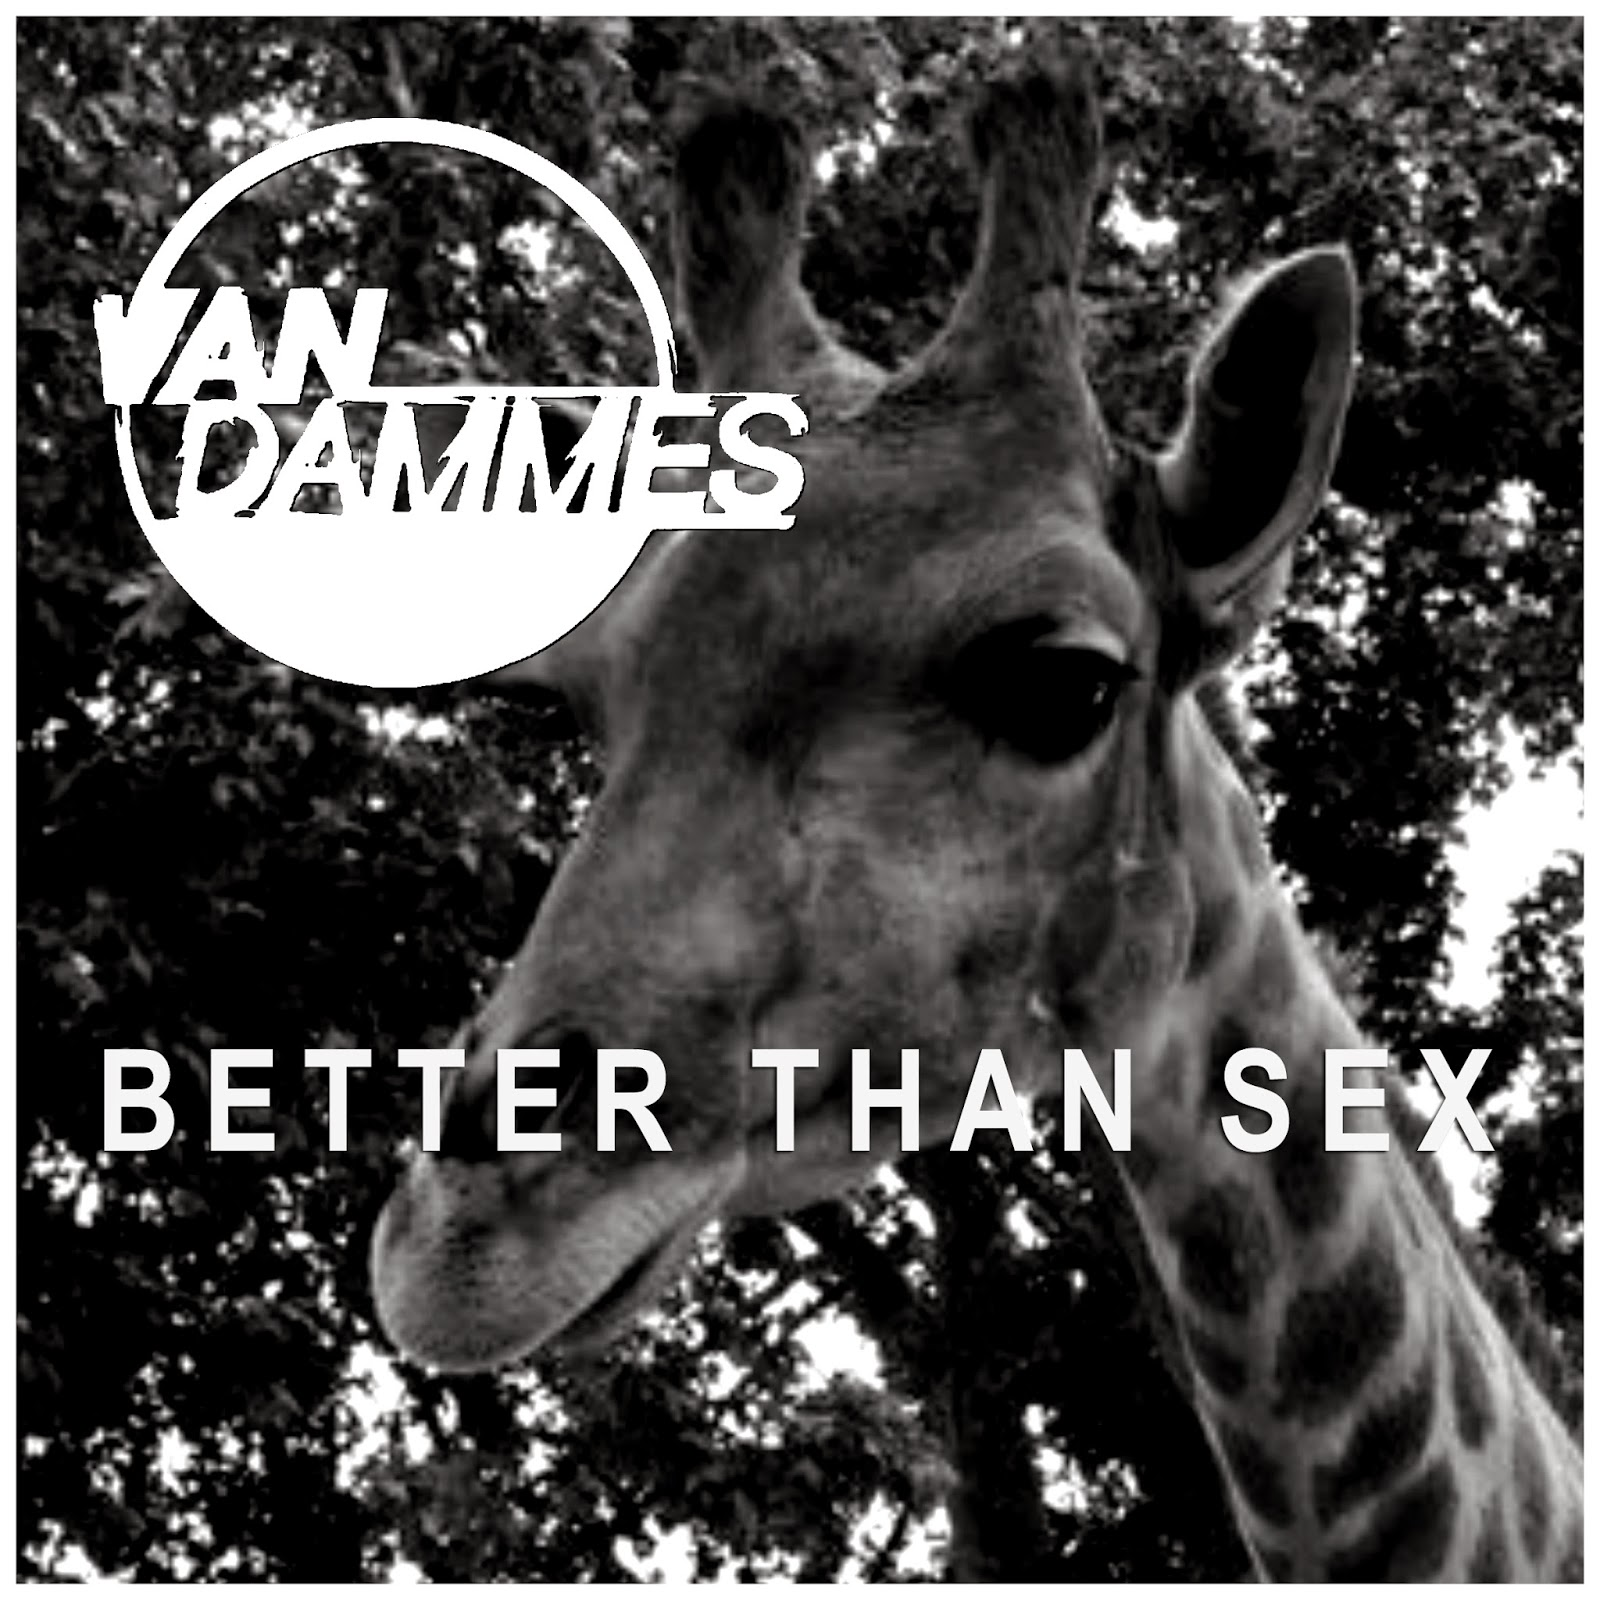 http://www.d4am.net/2015/03/van-dammes-better-than-sex.html